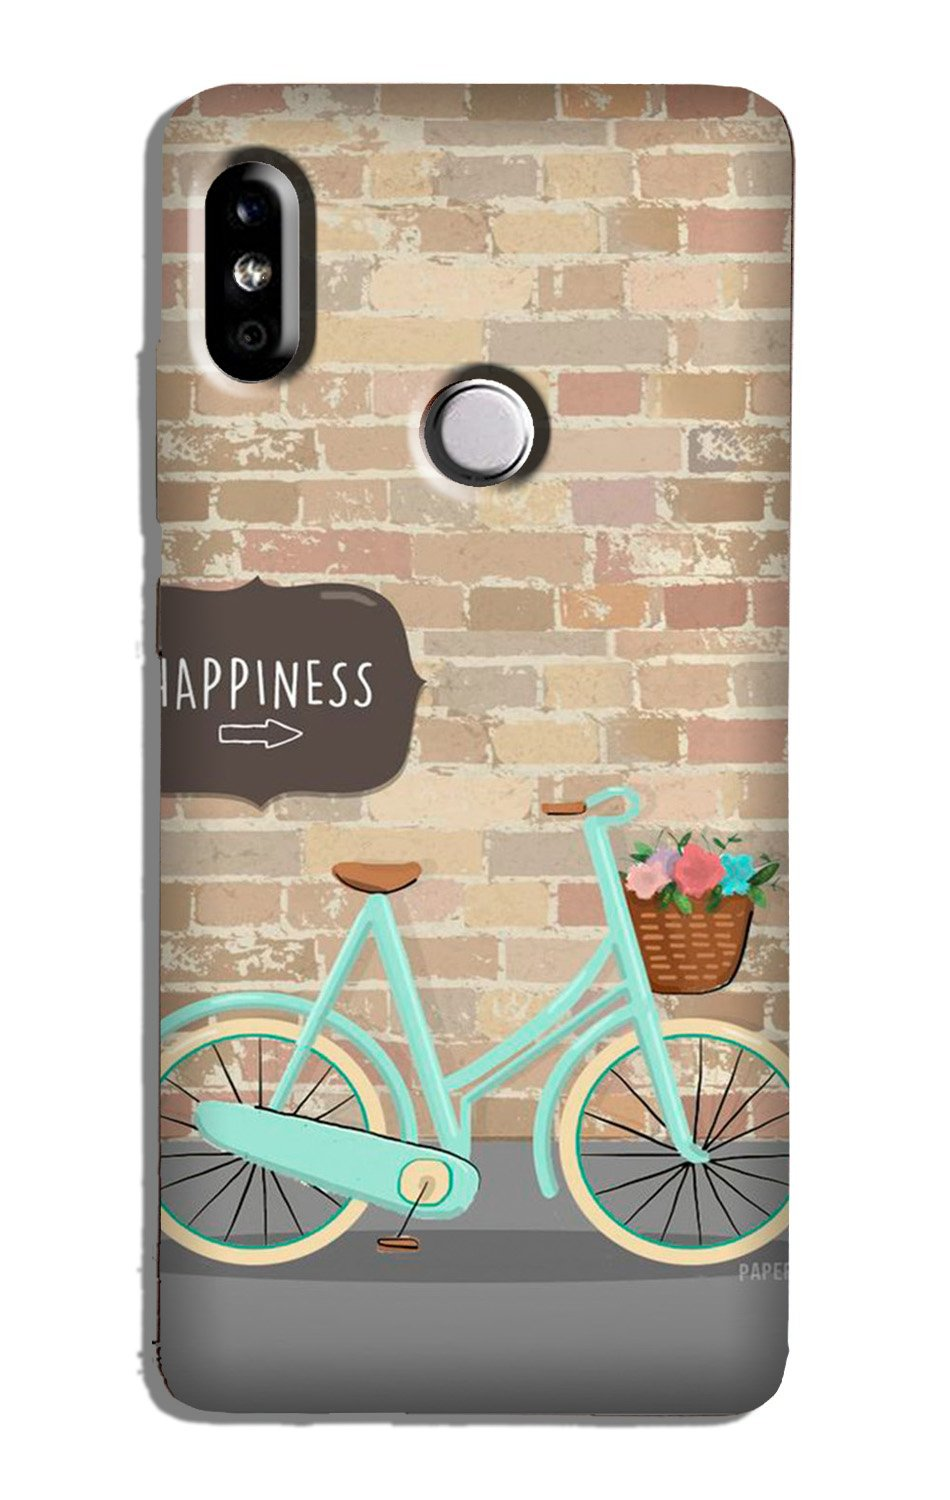 Happiness Case for Redmi Note 5 Pro